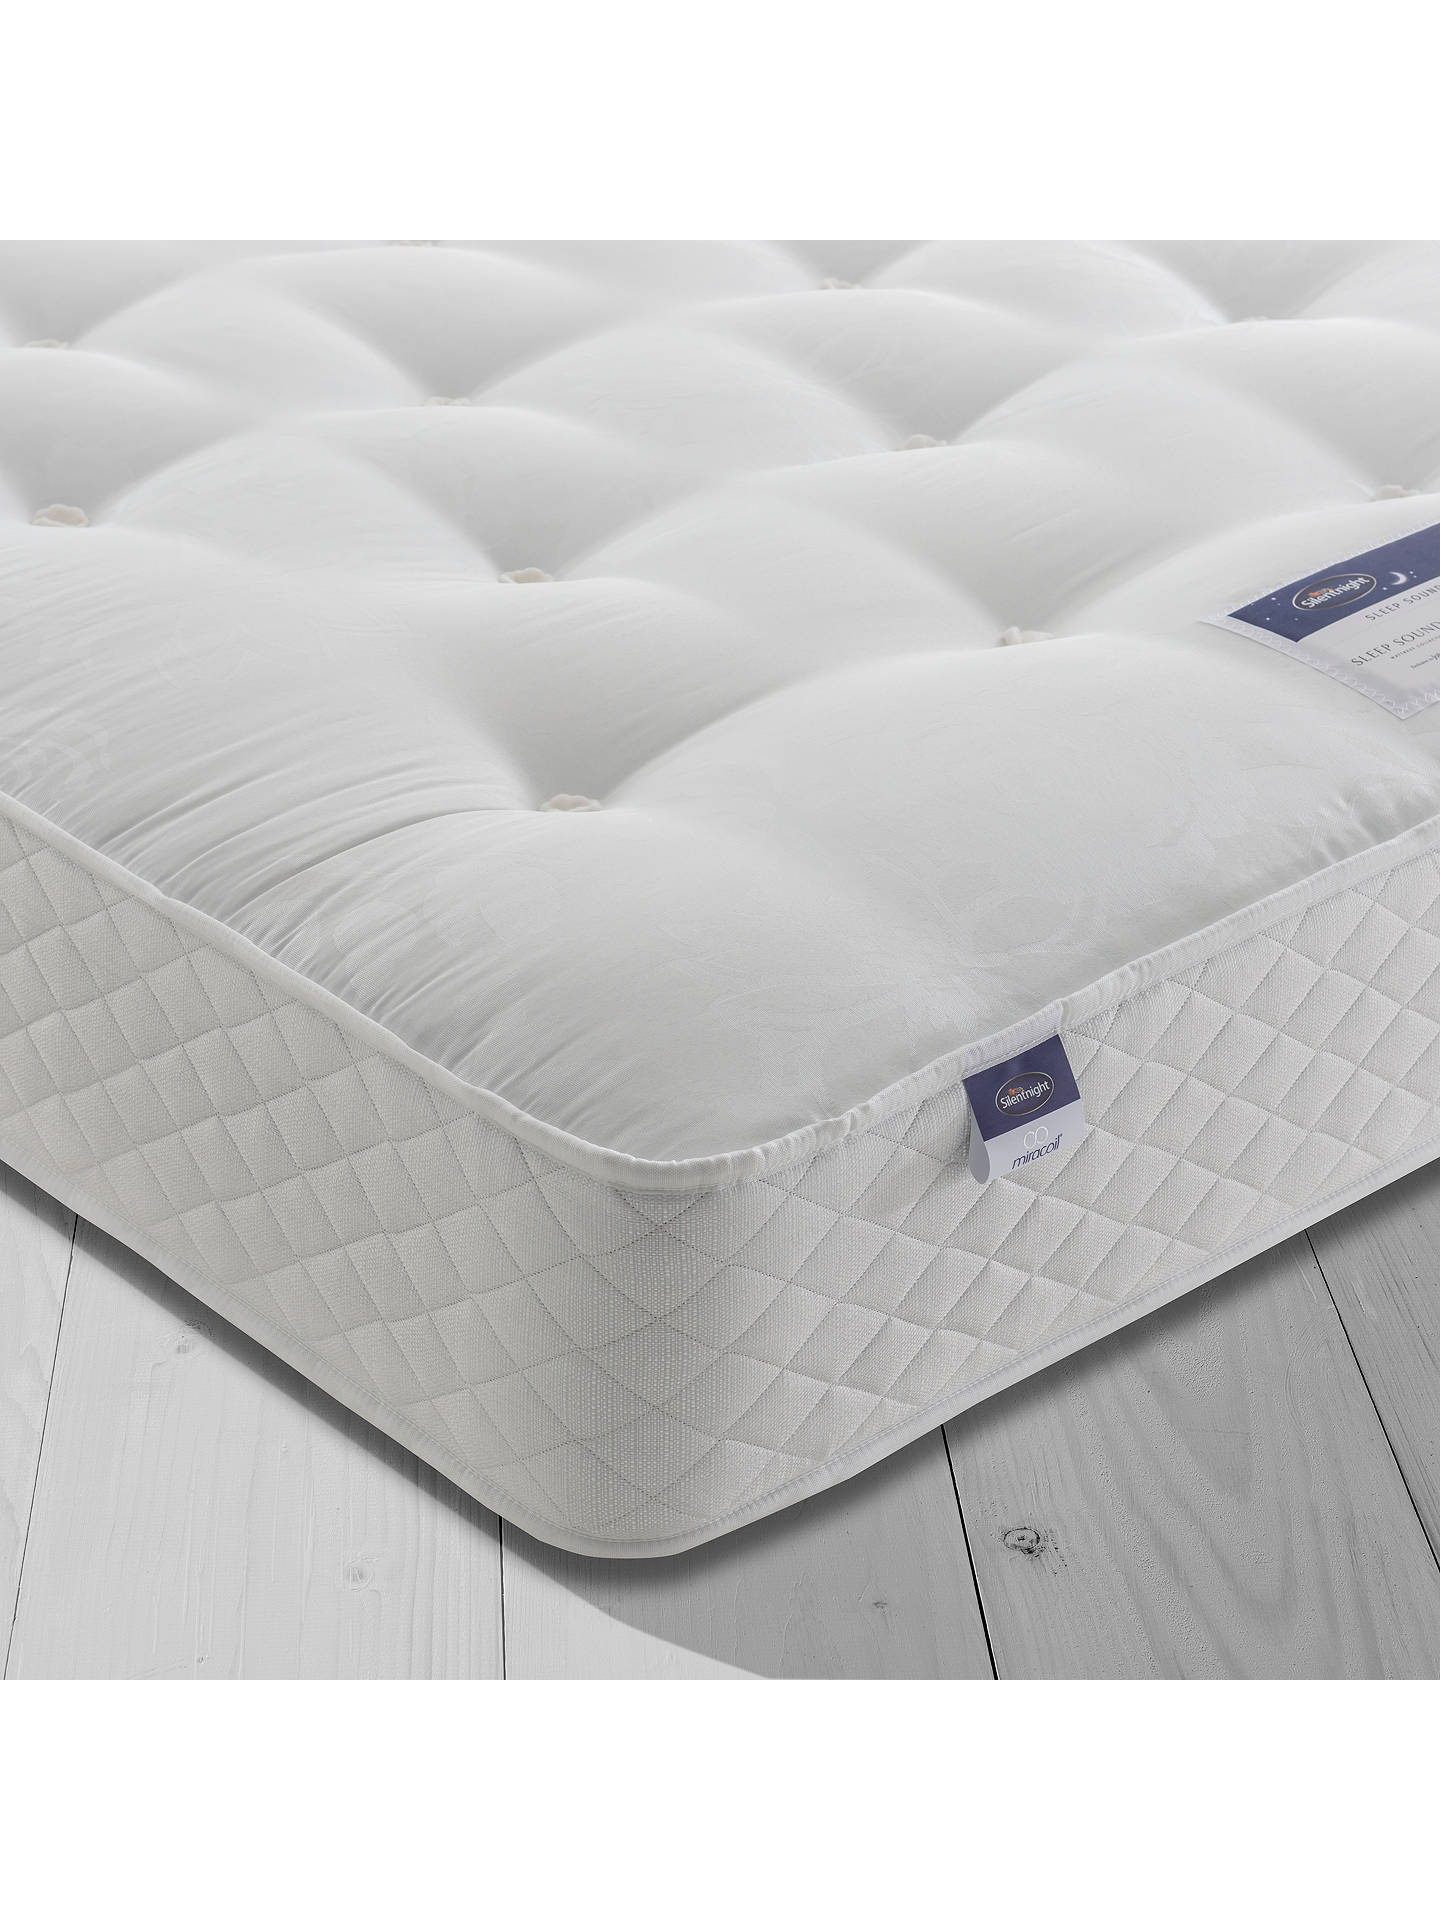 Buy Silentnight Sleep Soundly Miracoil Ortho Mattress, Firm, Super King Size Online at johnlewis.com